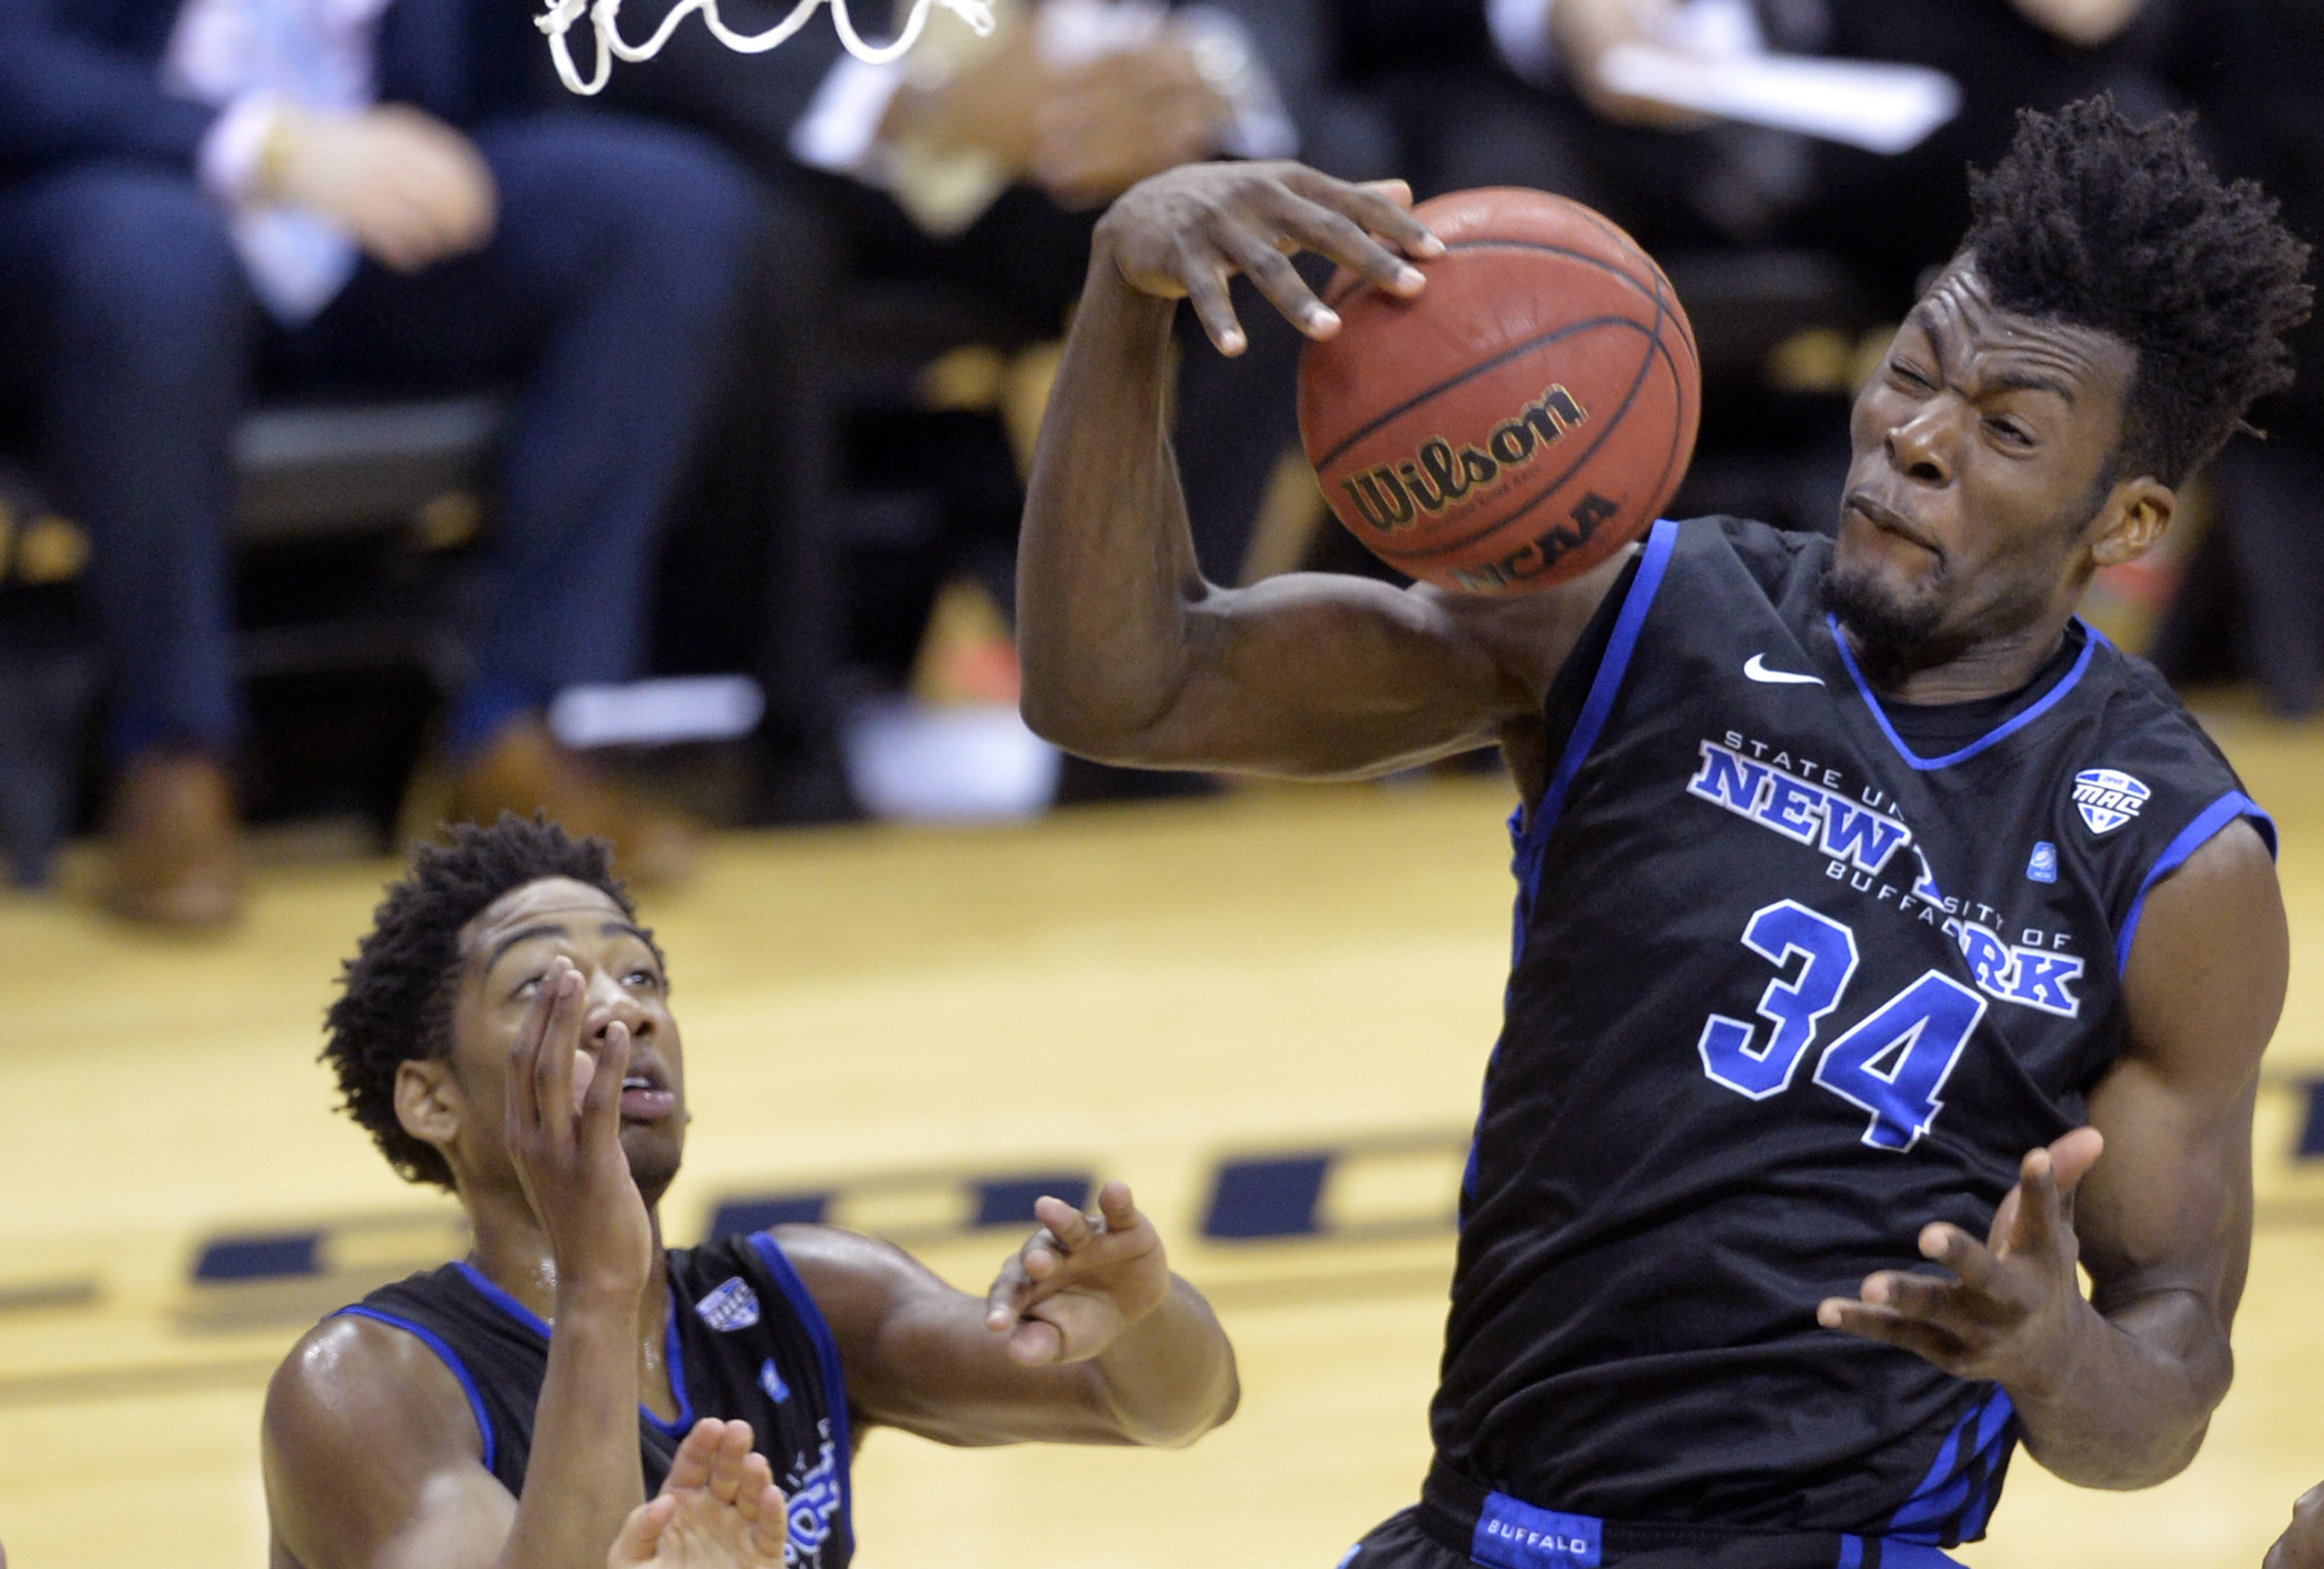 Buffalo's forward Ikenna Smart, right, rebounds beside CJ Massinburg in the first half of an NCAA college basketball game against Akron in the championship of the Mid-American Conference men's tournament, Saturday, March 12, 2016, in Cleveland. (AP Photo/